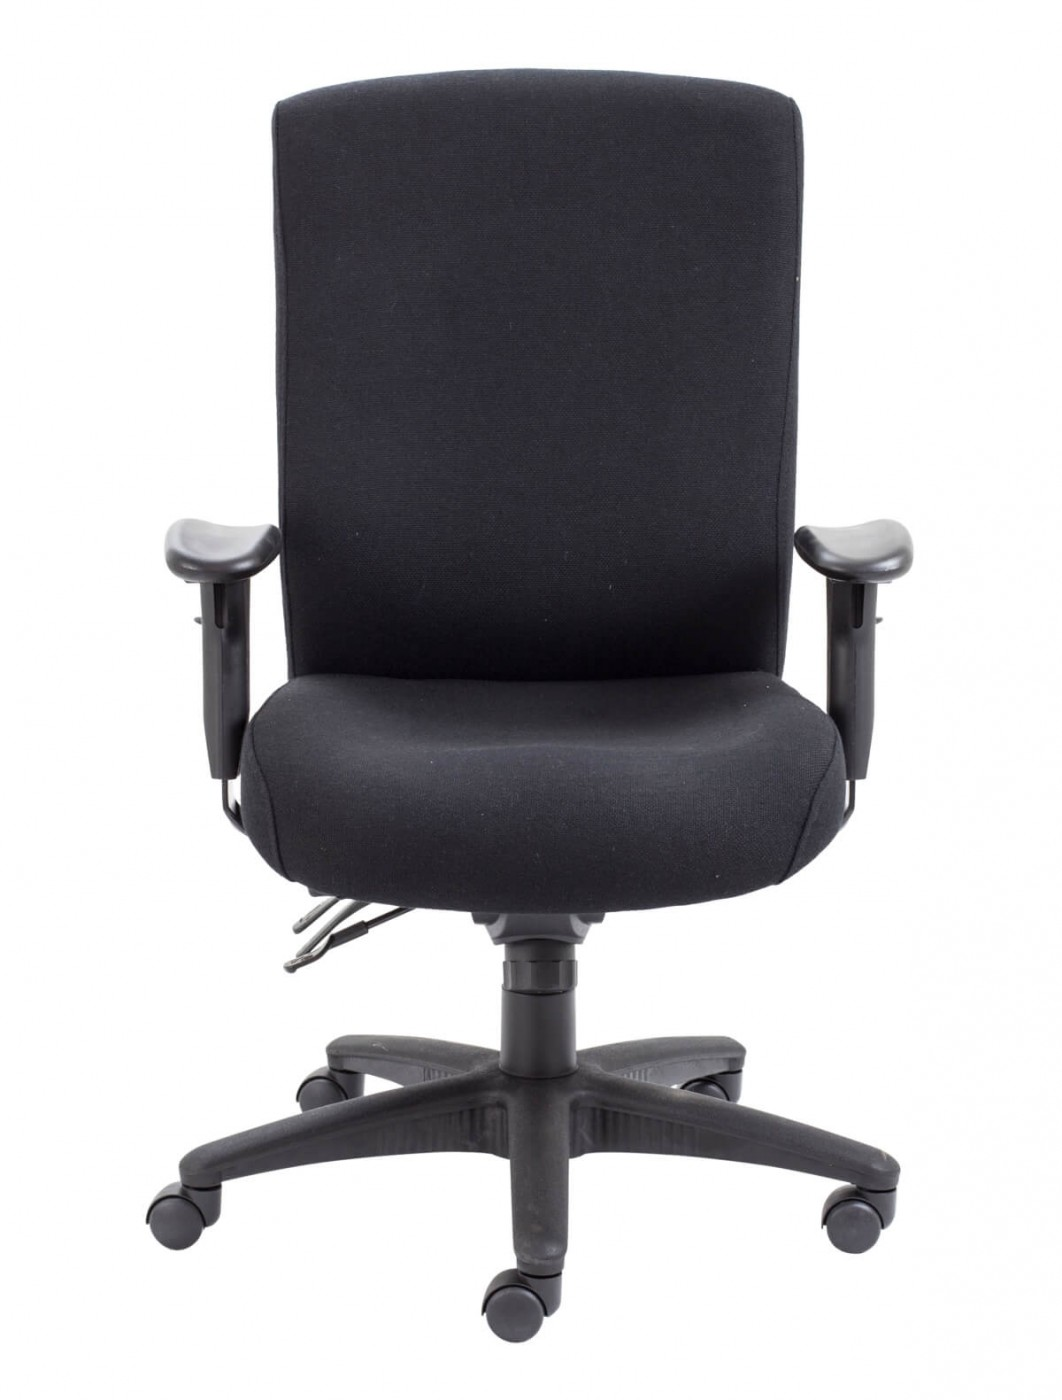 Heavy Duty Office Chair Office Chairs Marathon Heavy Duty Office Chair Ch1106bk